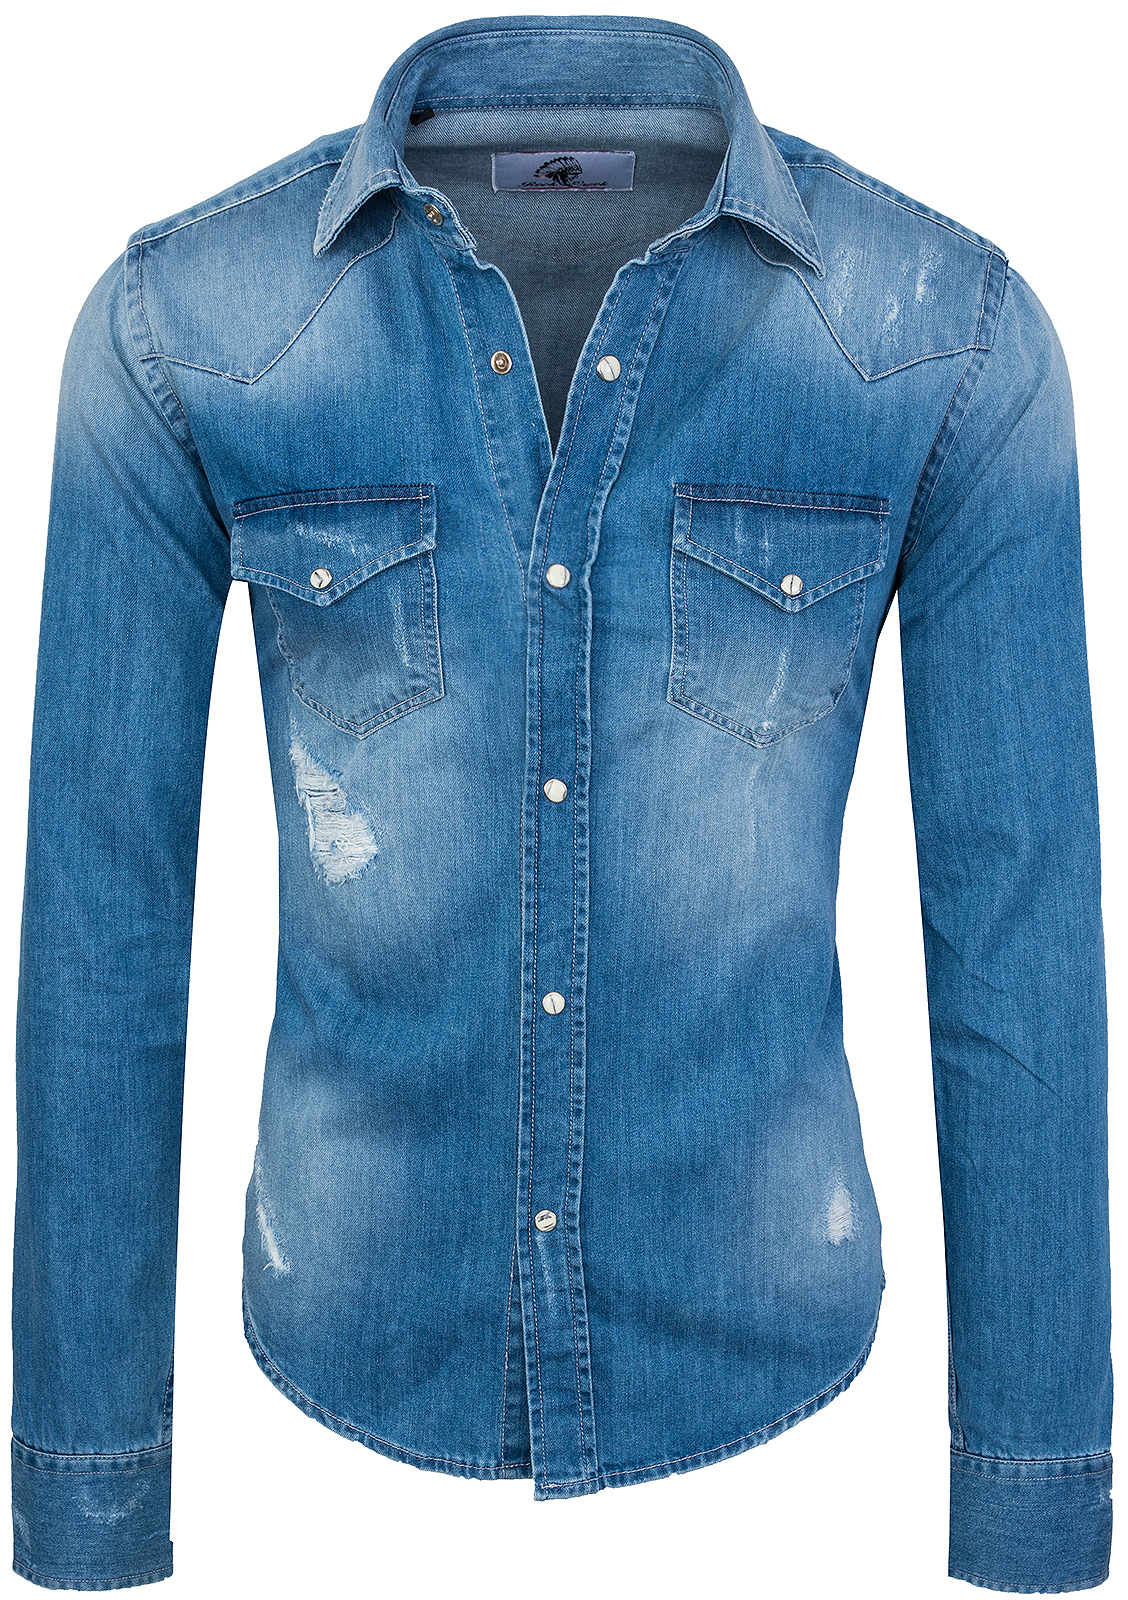 Rock Creek Herren Jeanshemd Denim Blau Herrenhemd Regular